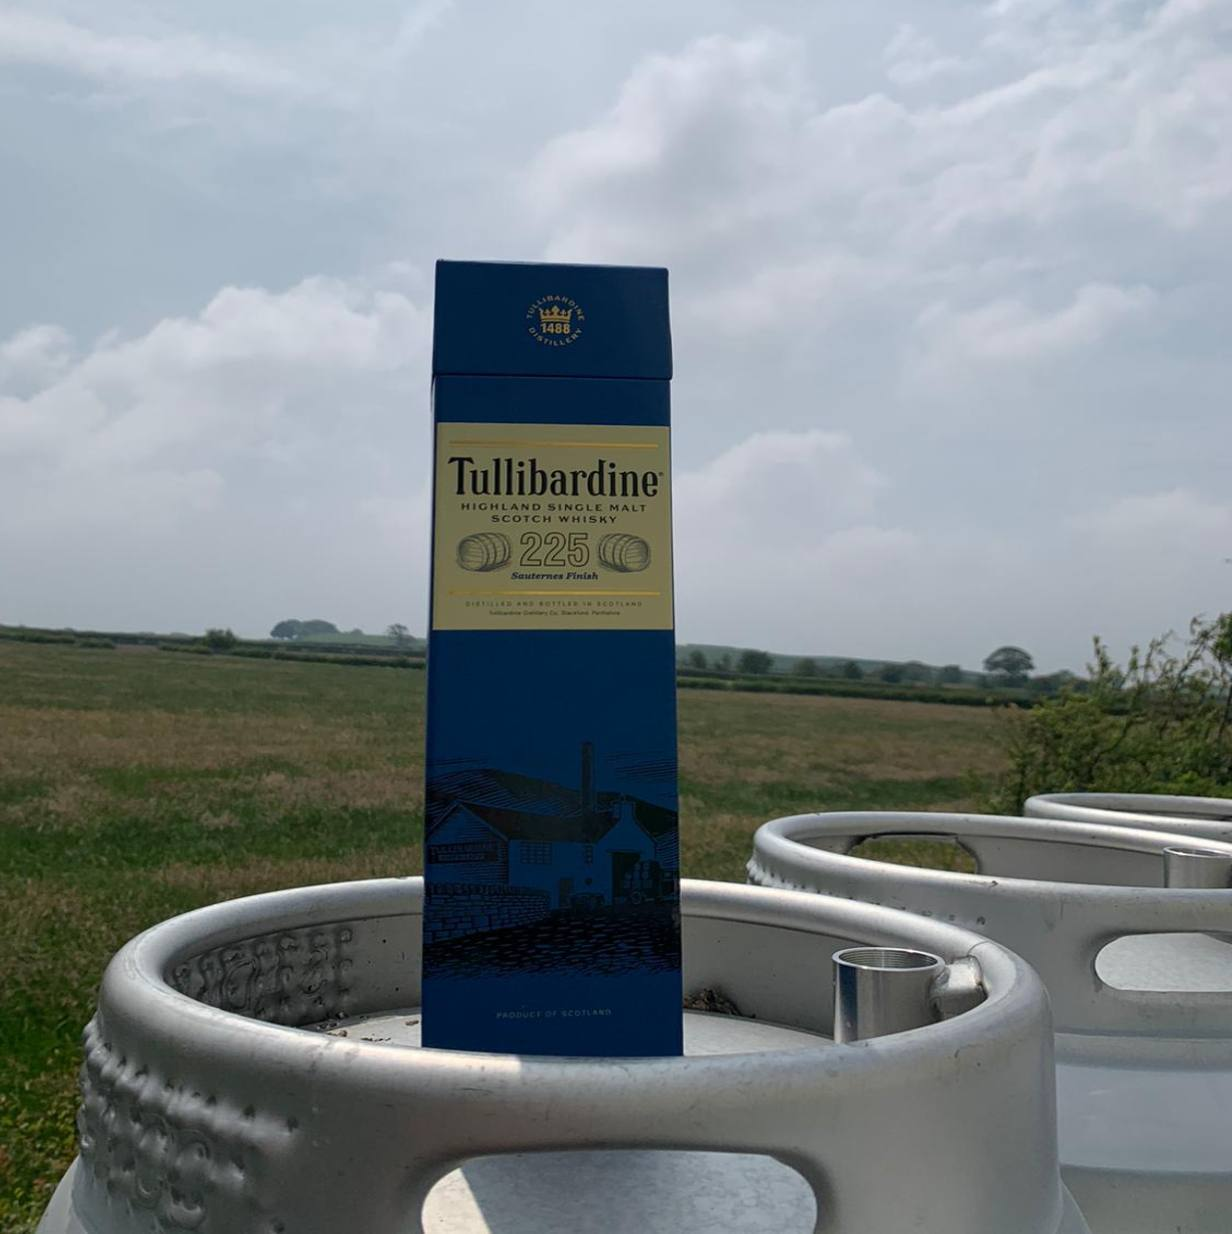 Tullibardine Sauternes Finish Highland Single Malt Scotch Whisky - HawksheadBrewery